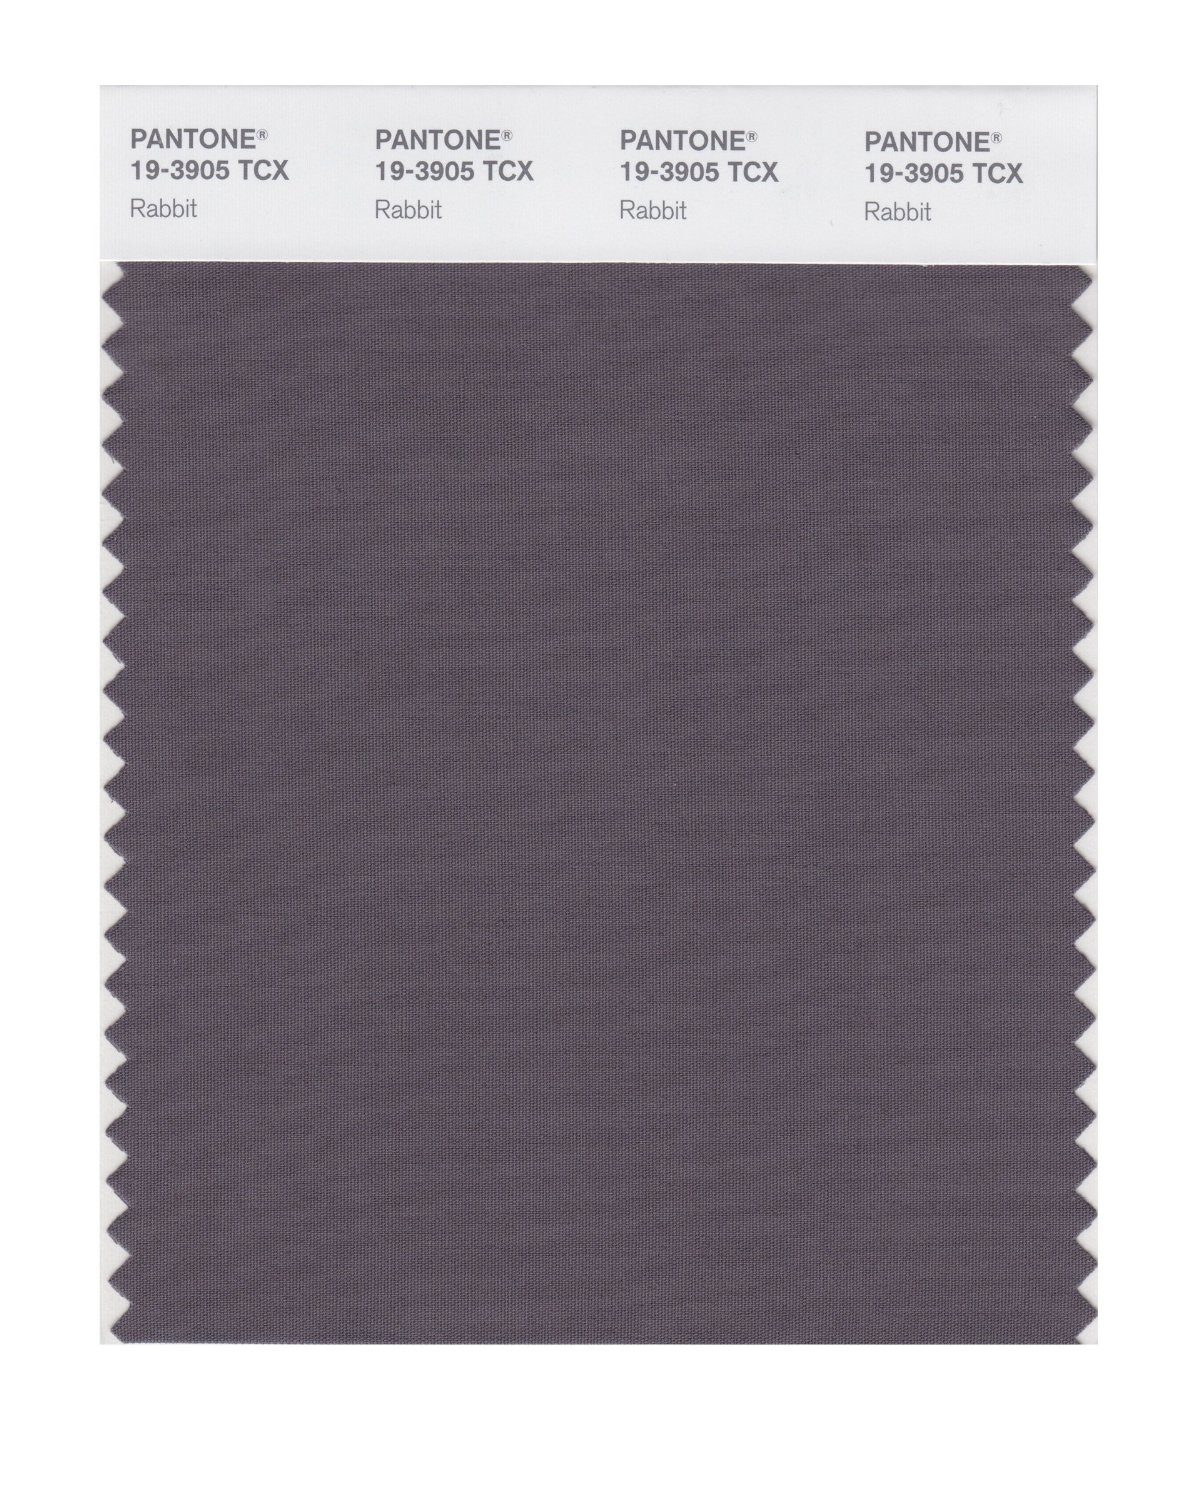 Pantone Smart Swatch 19-3905 Rabbit